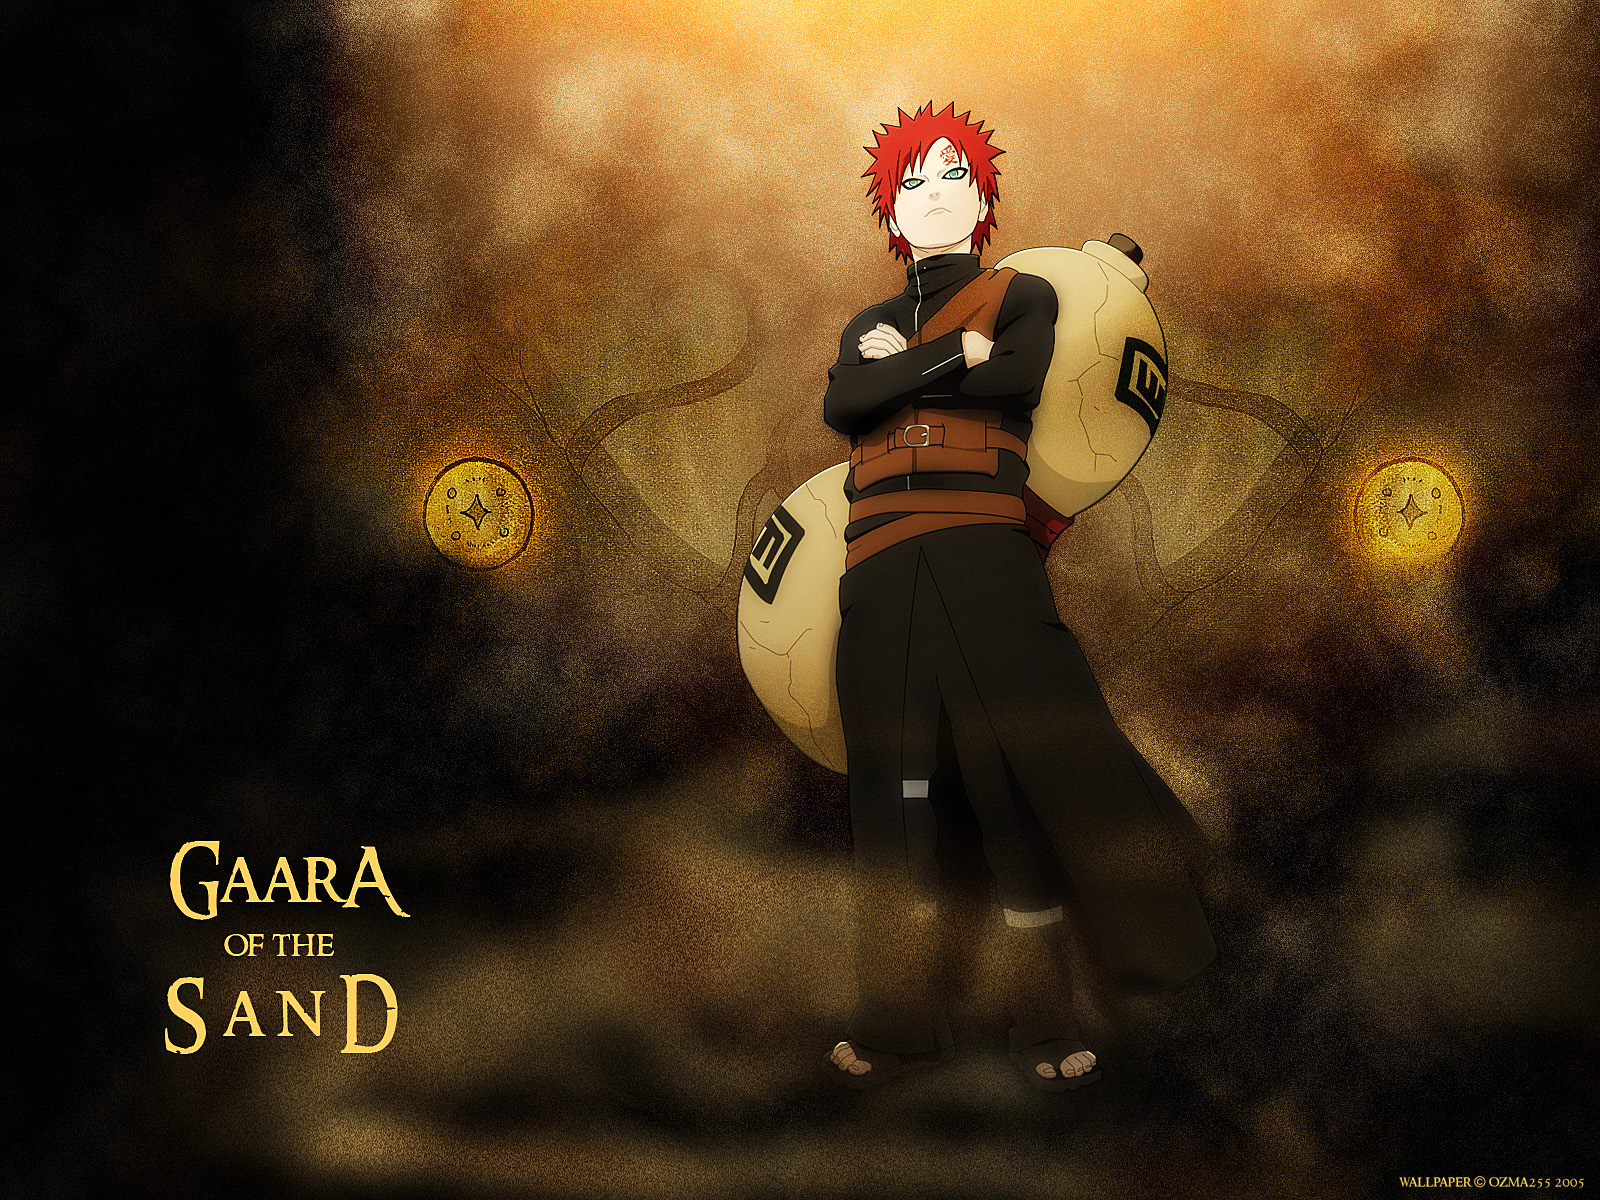 naruto and gaara wallpaper - photo #2